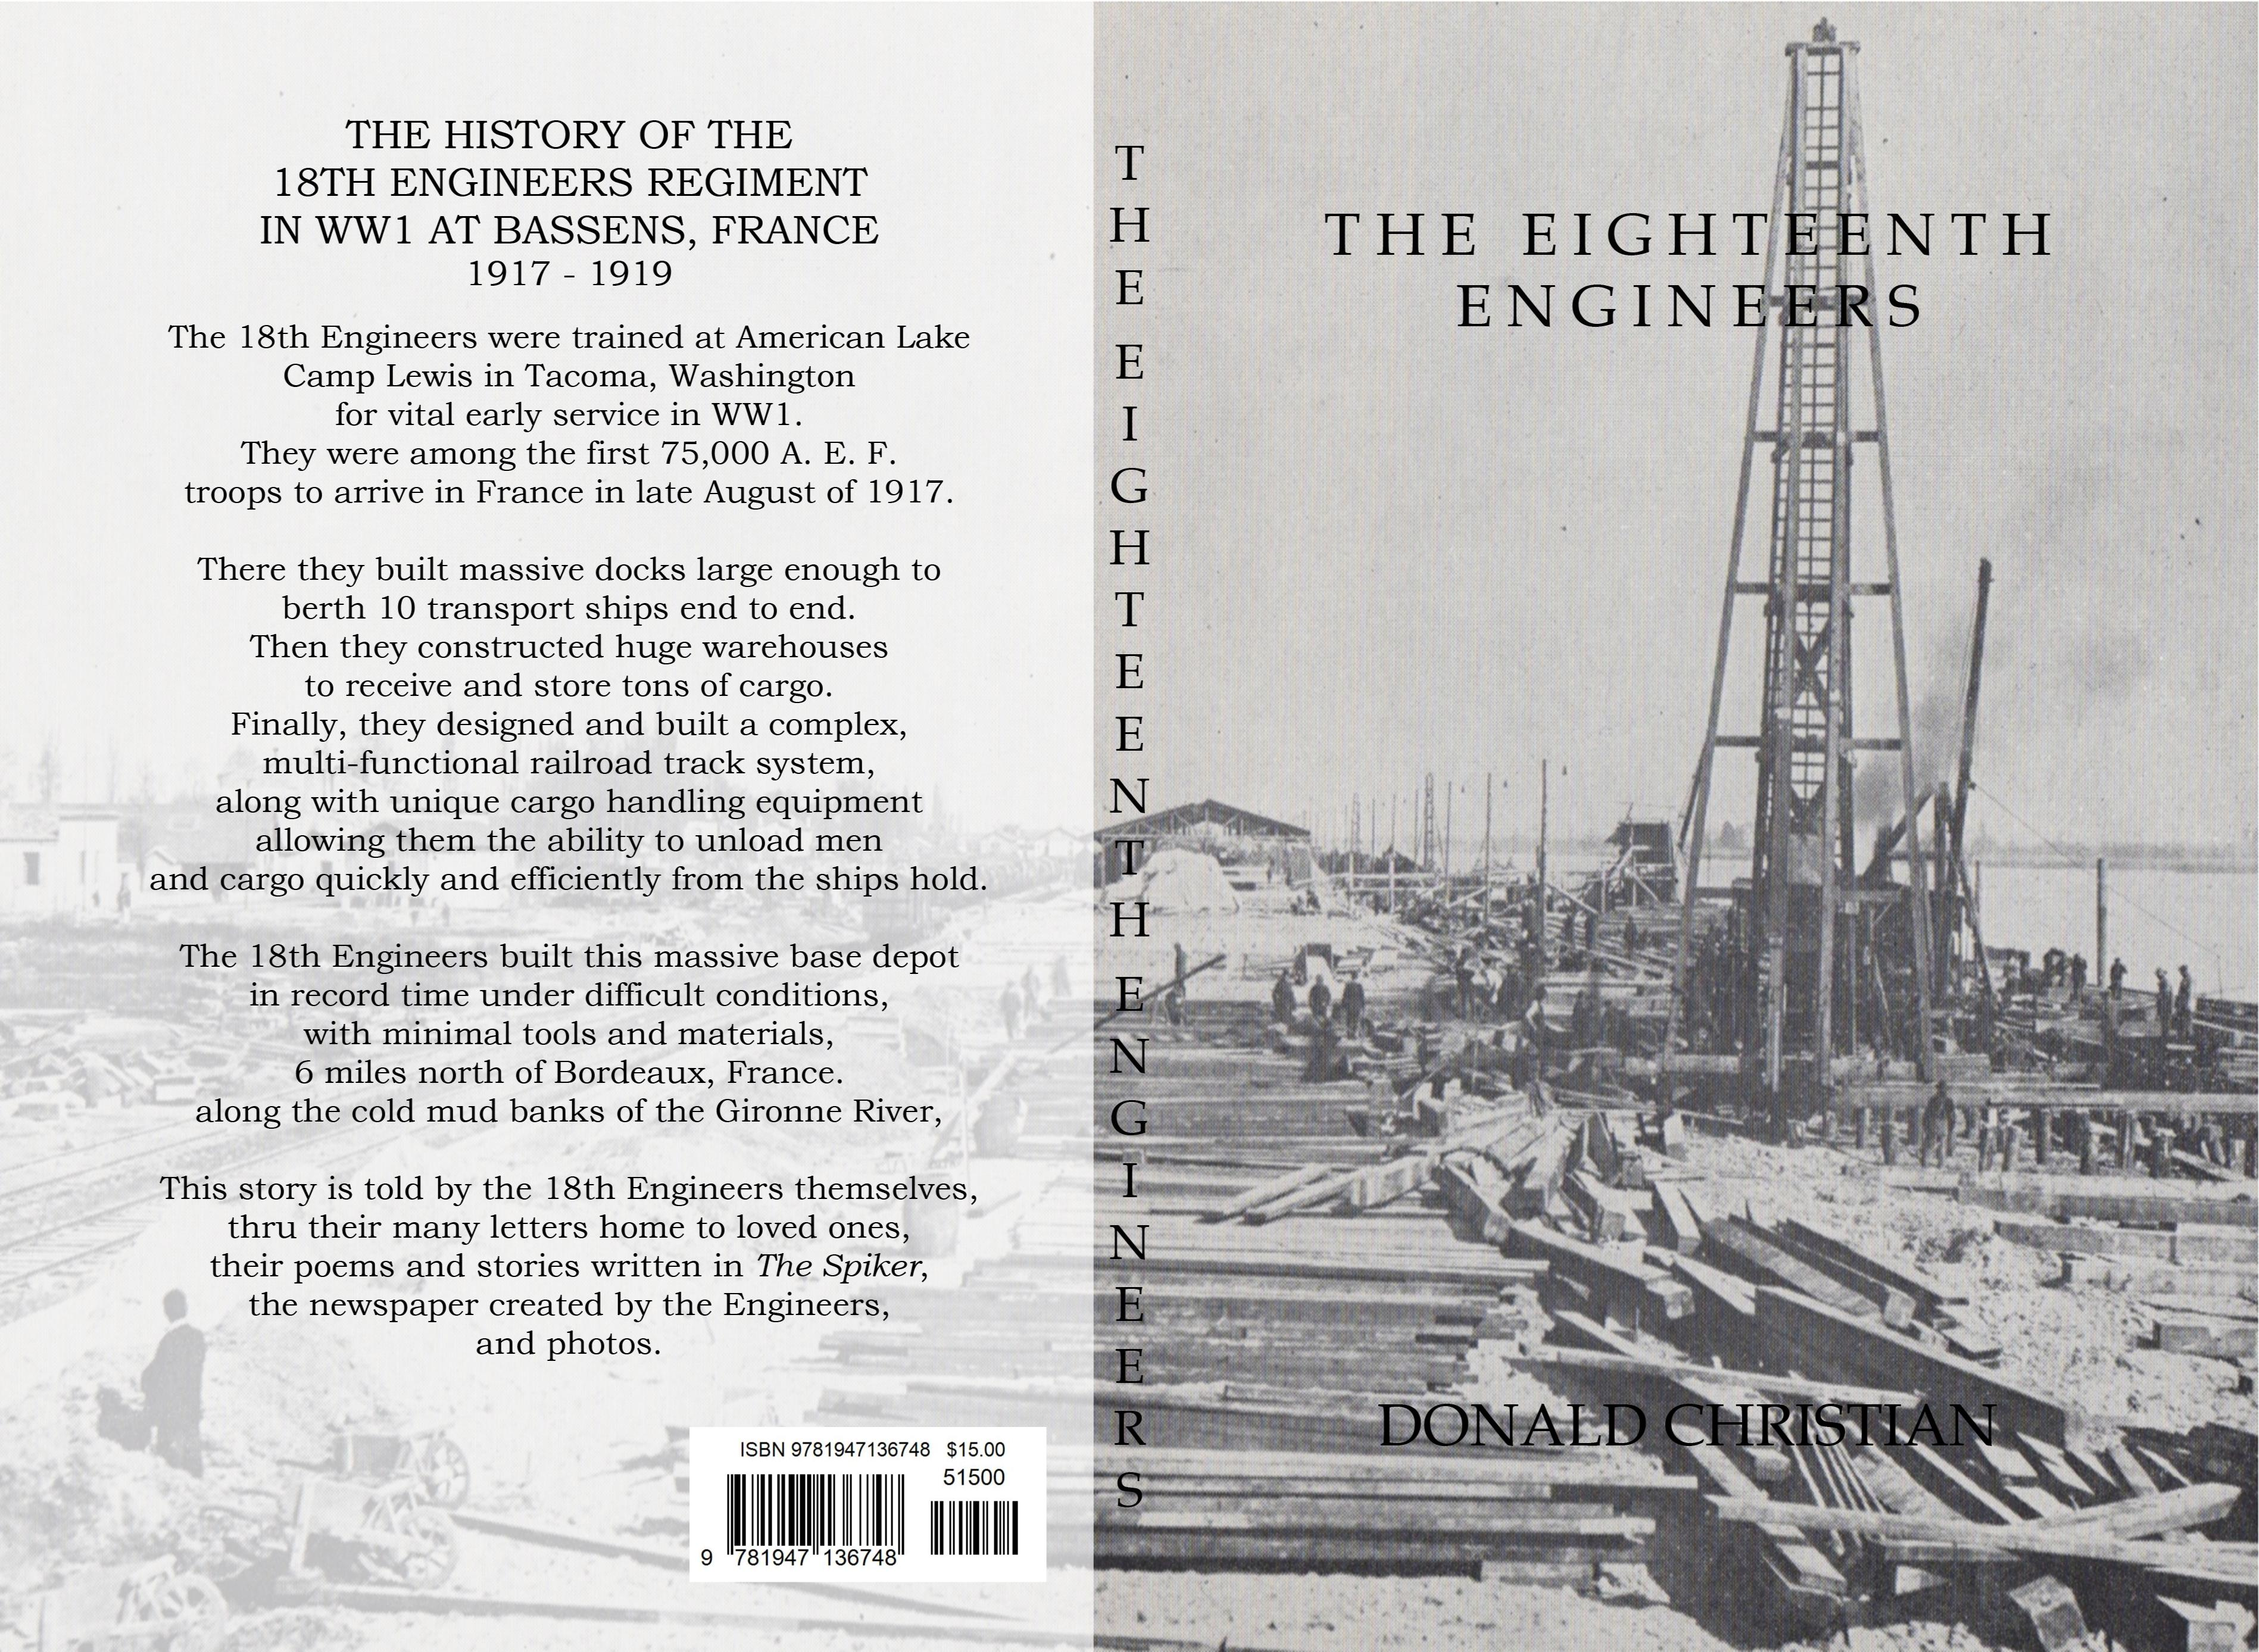 THE EIGHTEENTH ENGINEERS cover image